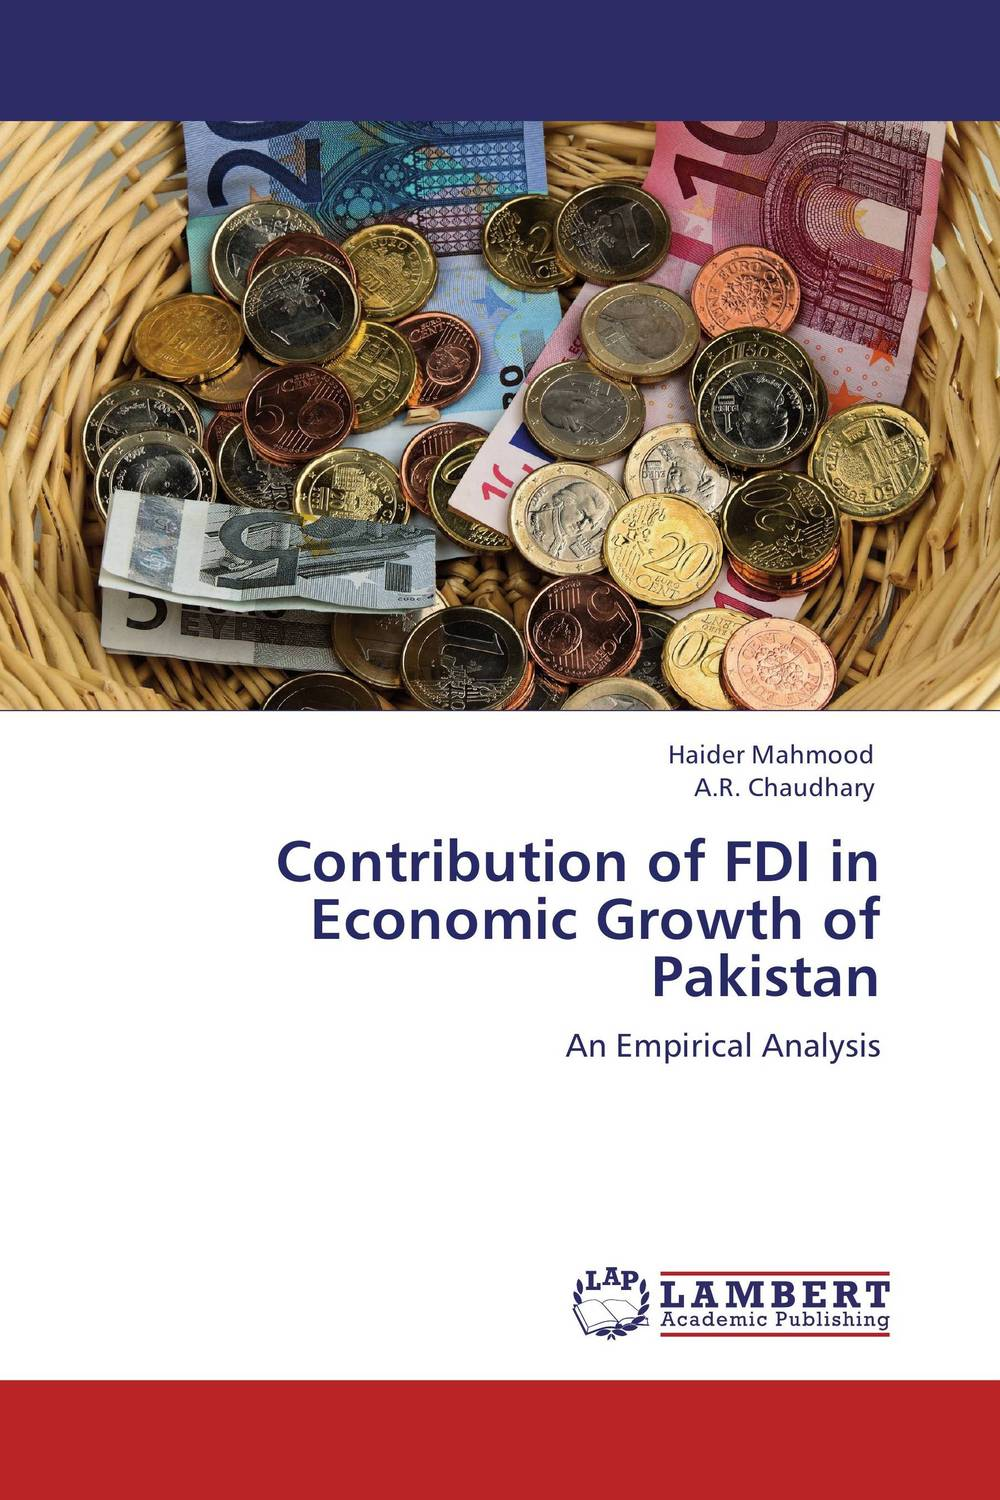 Contribution of FDI in Economic Growth of Pakistan hildy richelson bonds the unbeaten path to secure investment growth